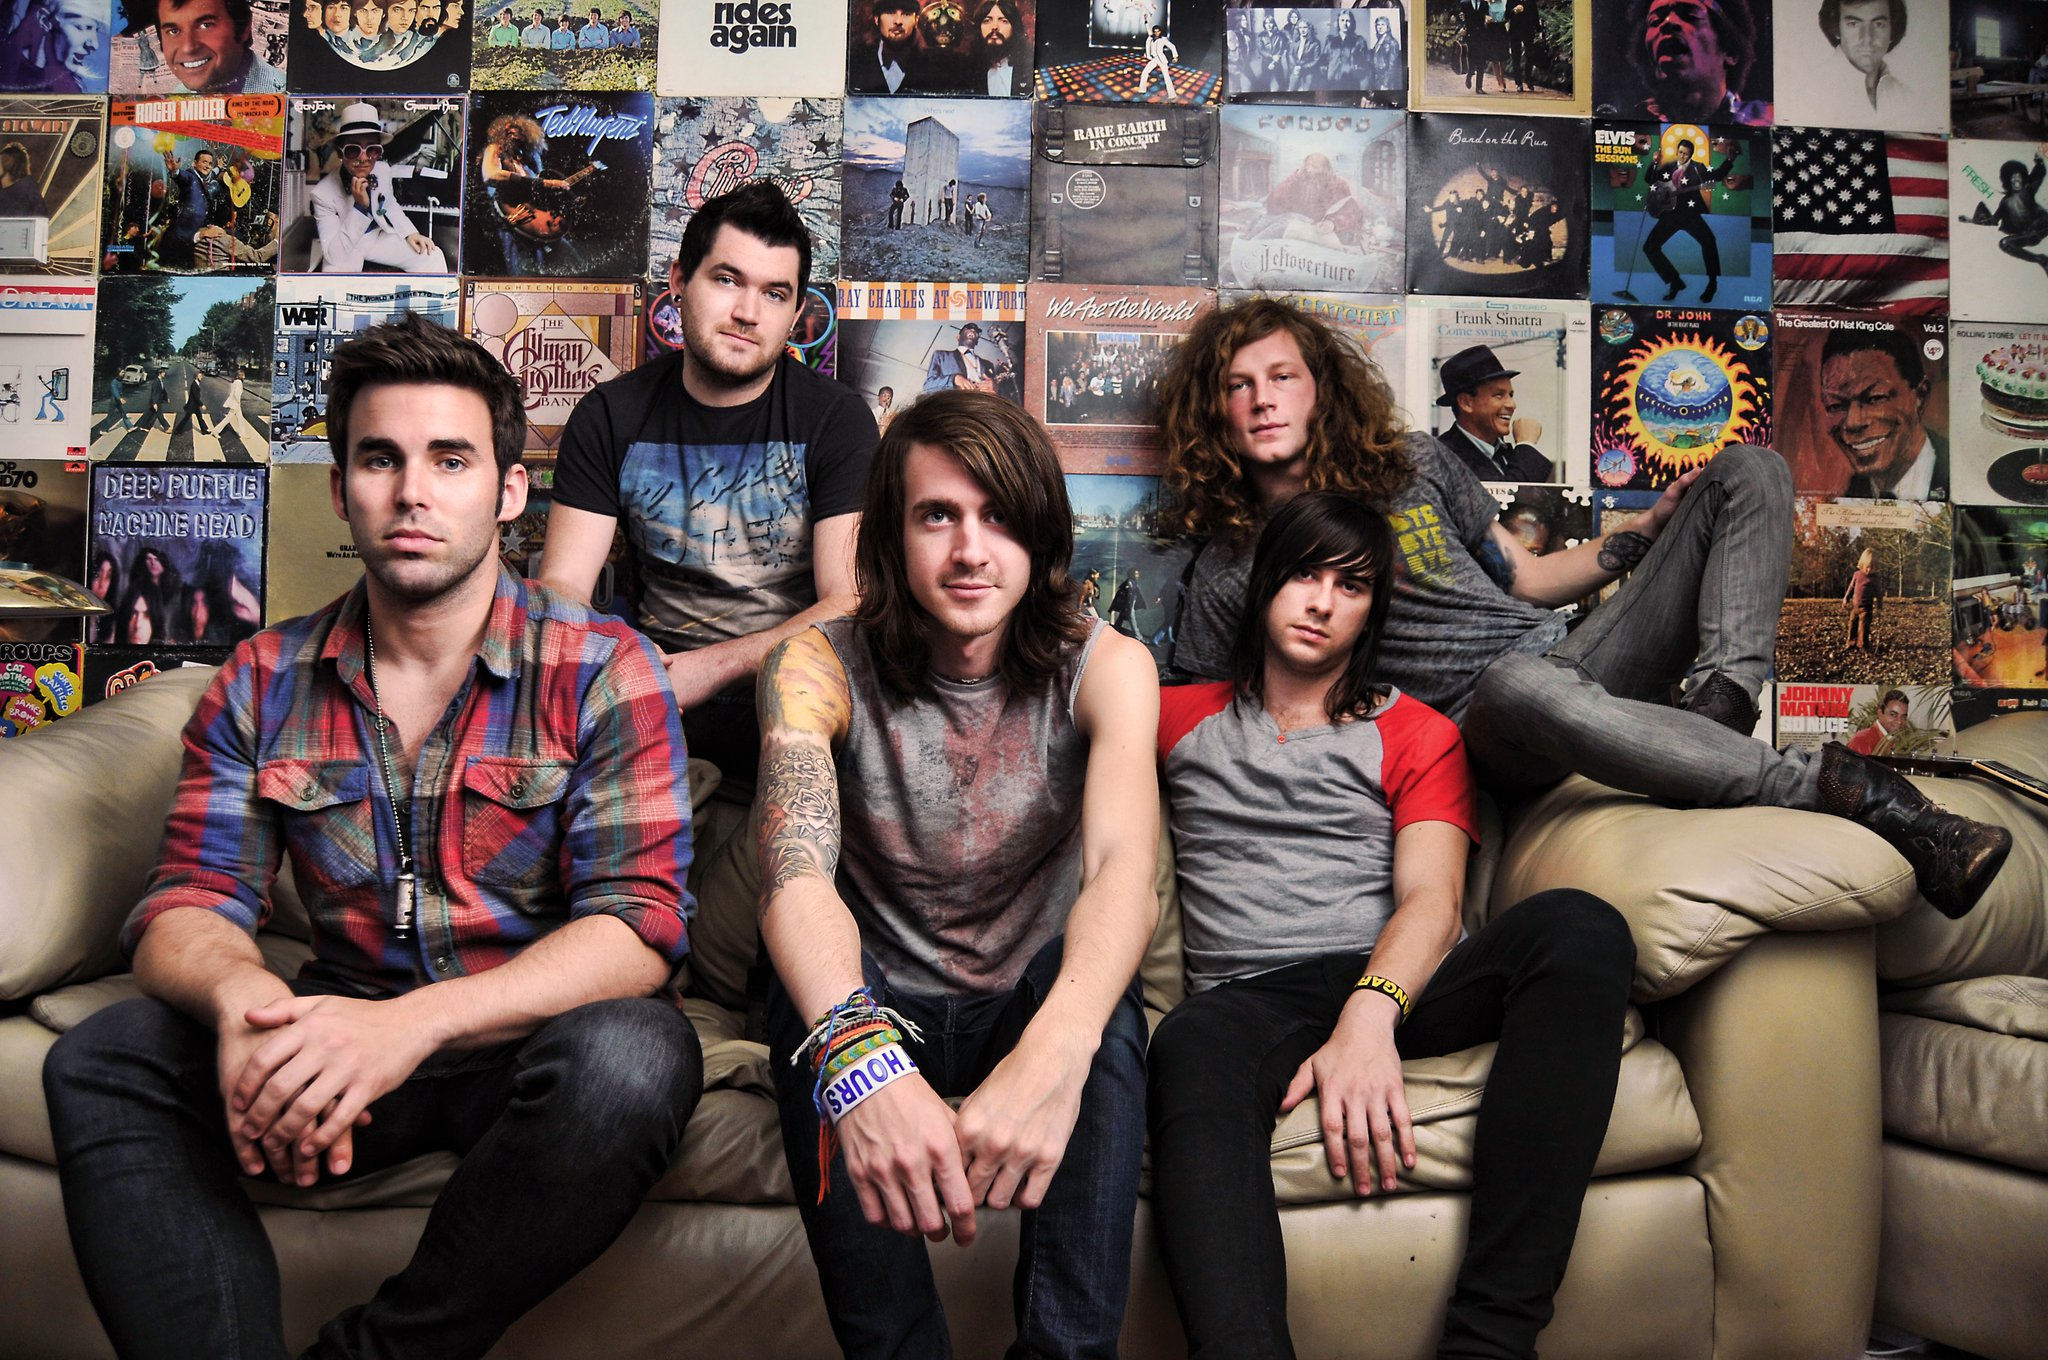 Mayday parade real friends as it is and this wild life announce mayday parade real friends as it is and this wild life have been announced as bands for the upcoming ap tour you can see the poster and dates below m4hsunfo